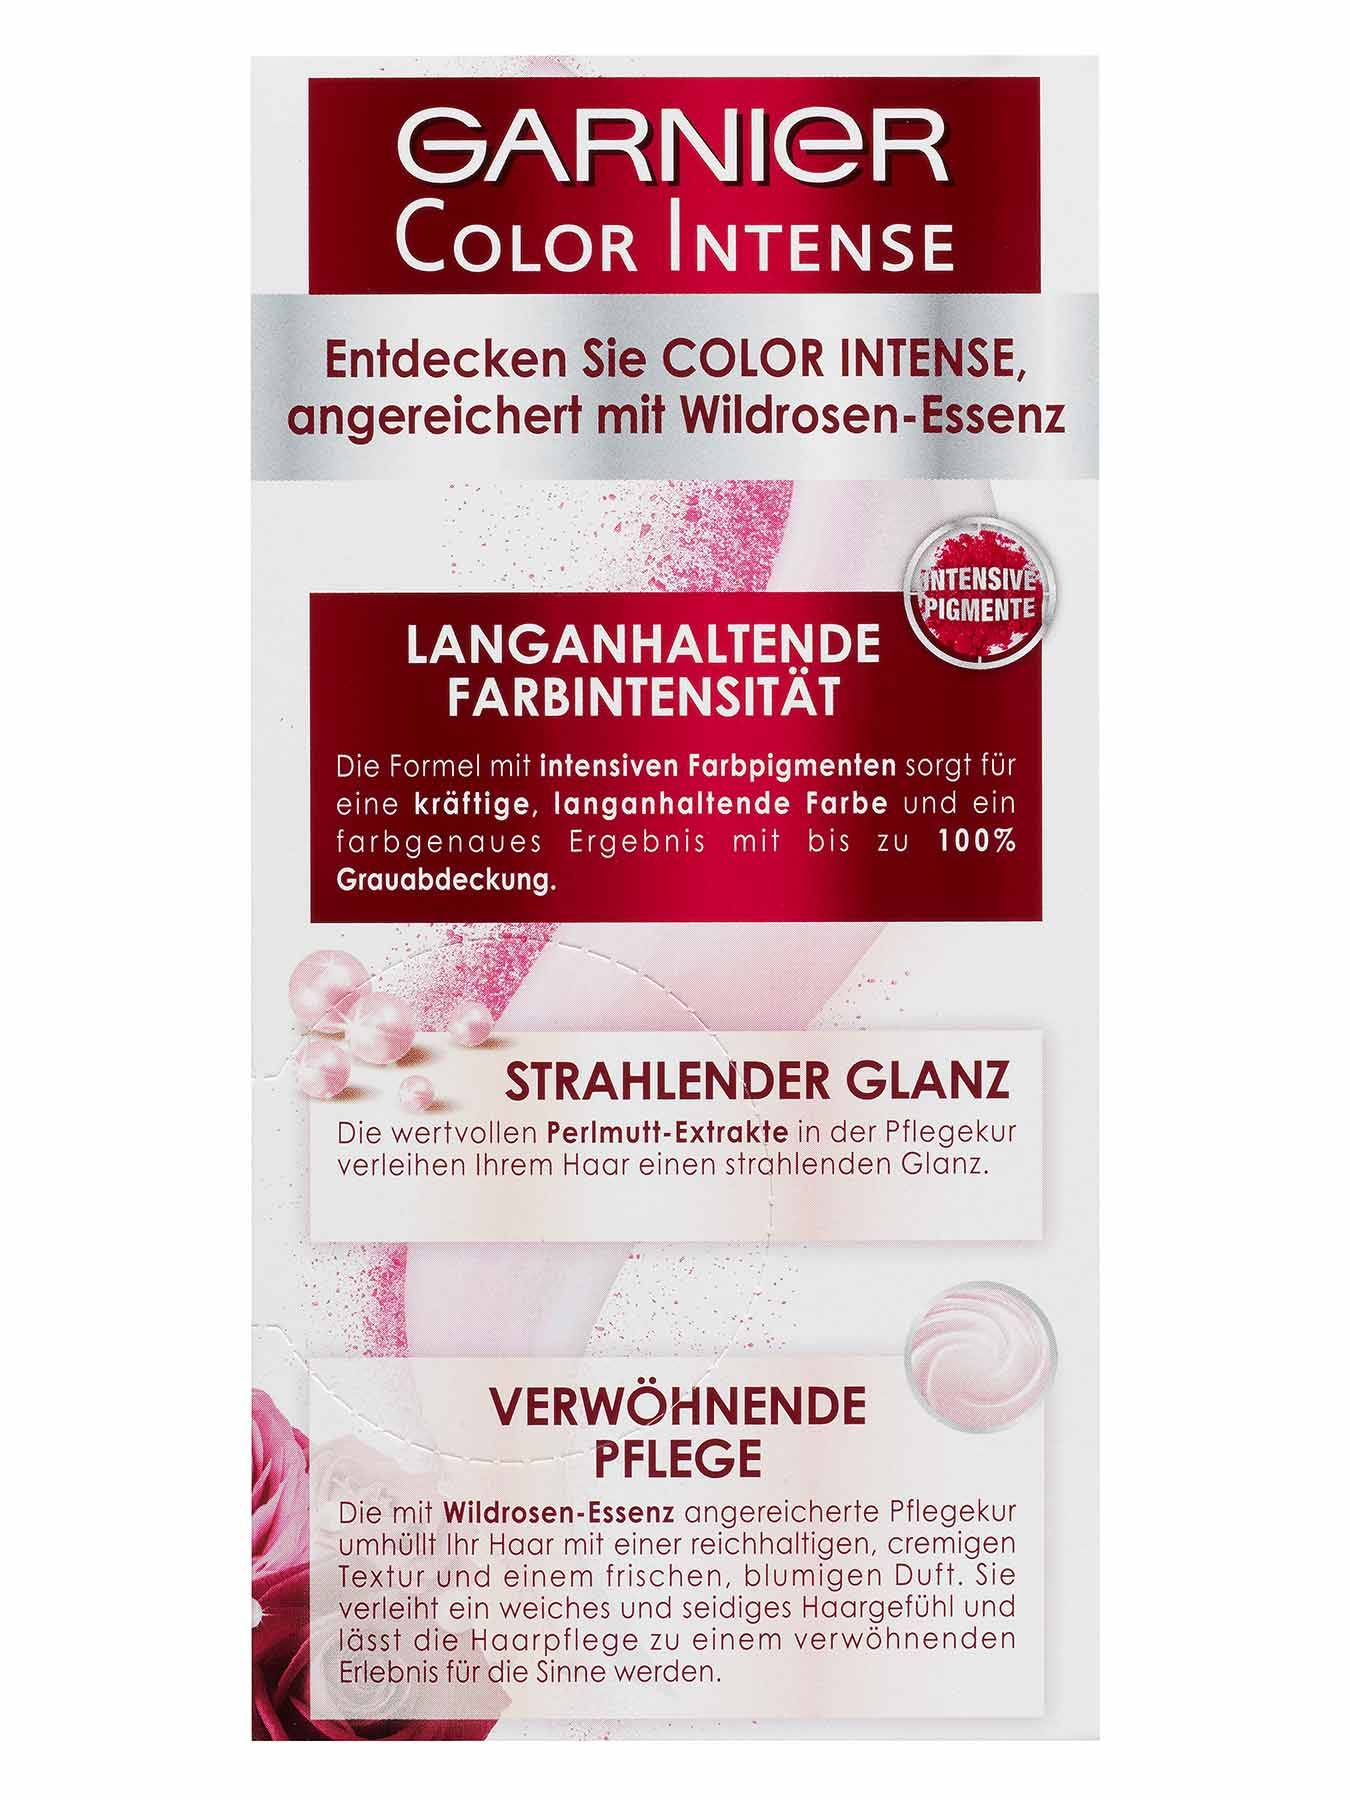 5-0-Samtbraun-Intensiv-Creme-Coloration-Color-Intense-1Stk-Rueckseite-Garnier-Deutschland-gr